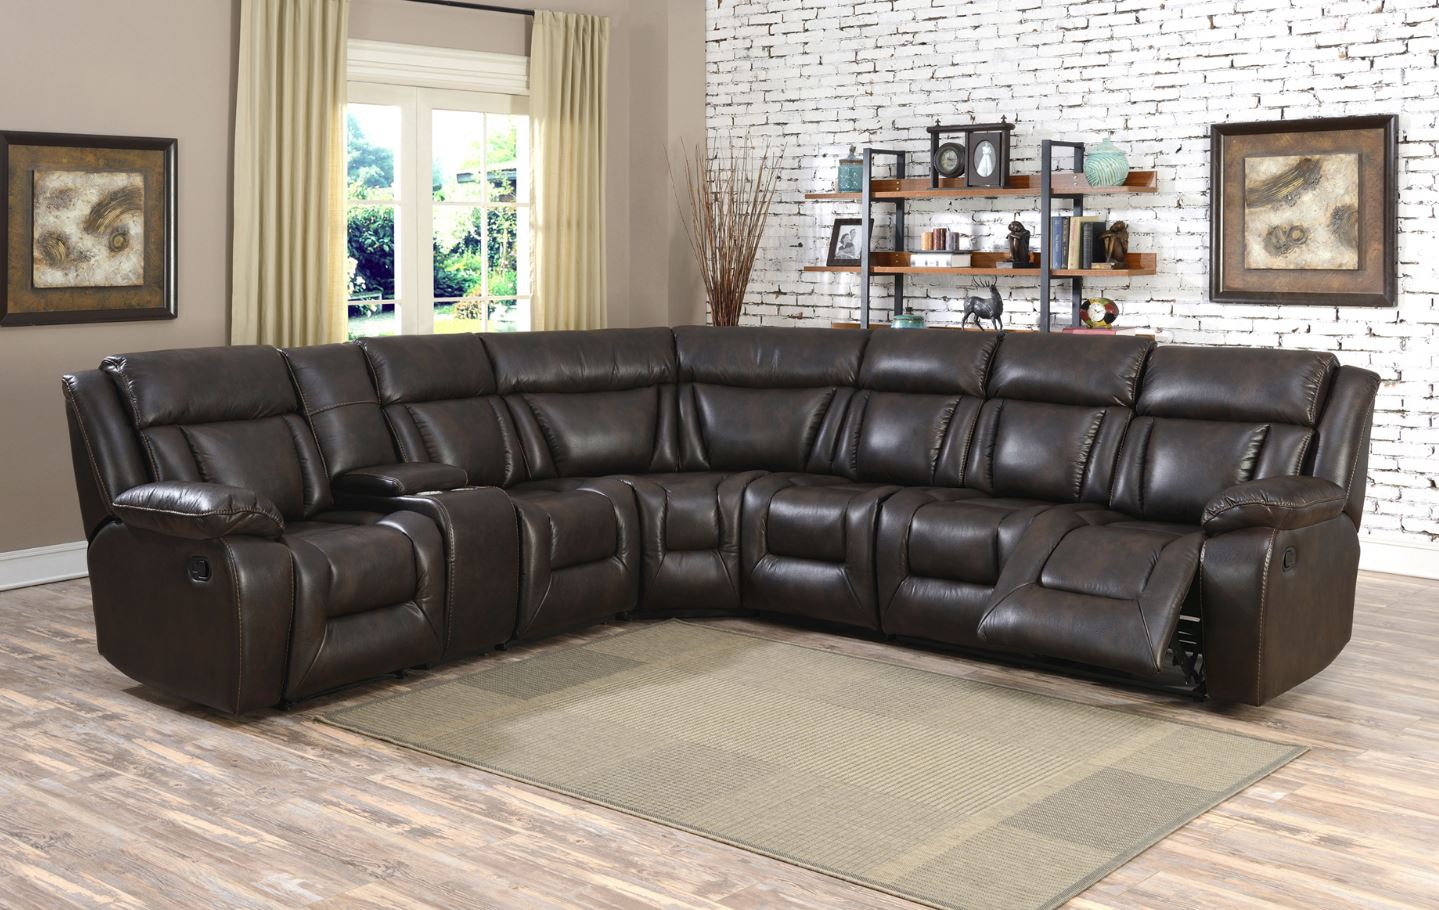 Leather Air with Memory Foam Recliner Sectional